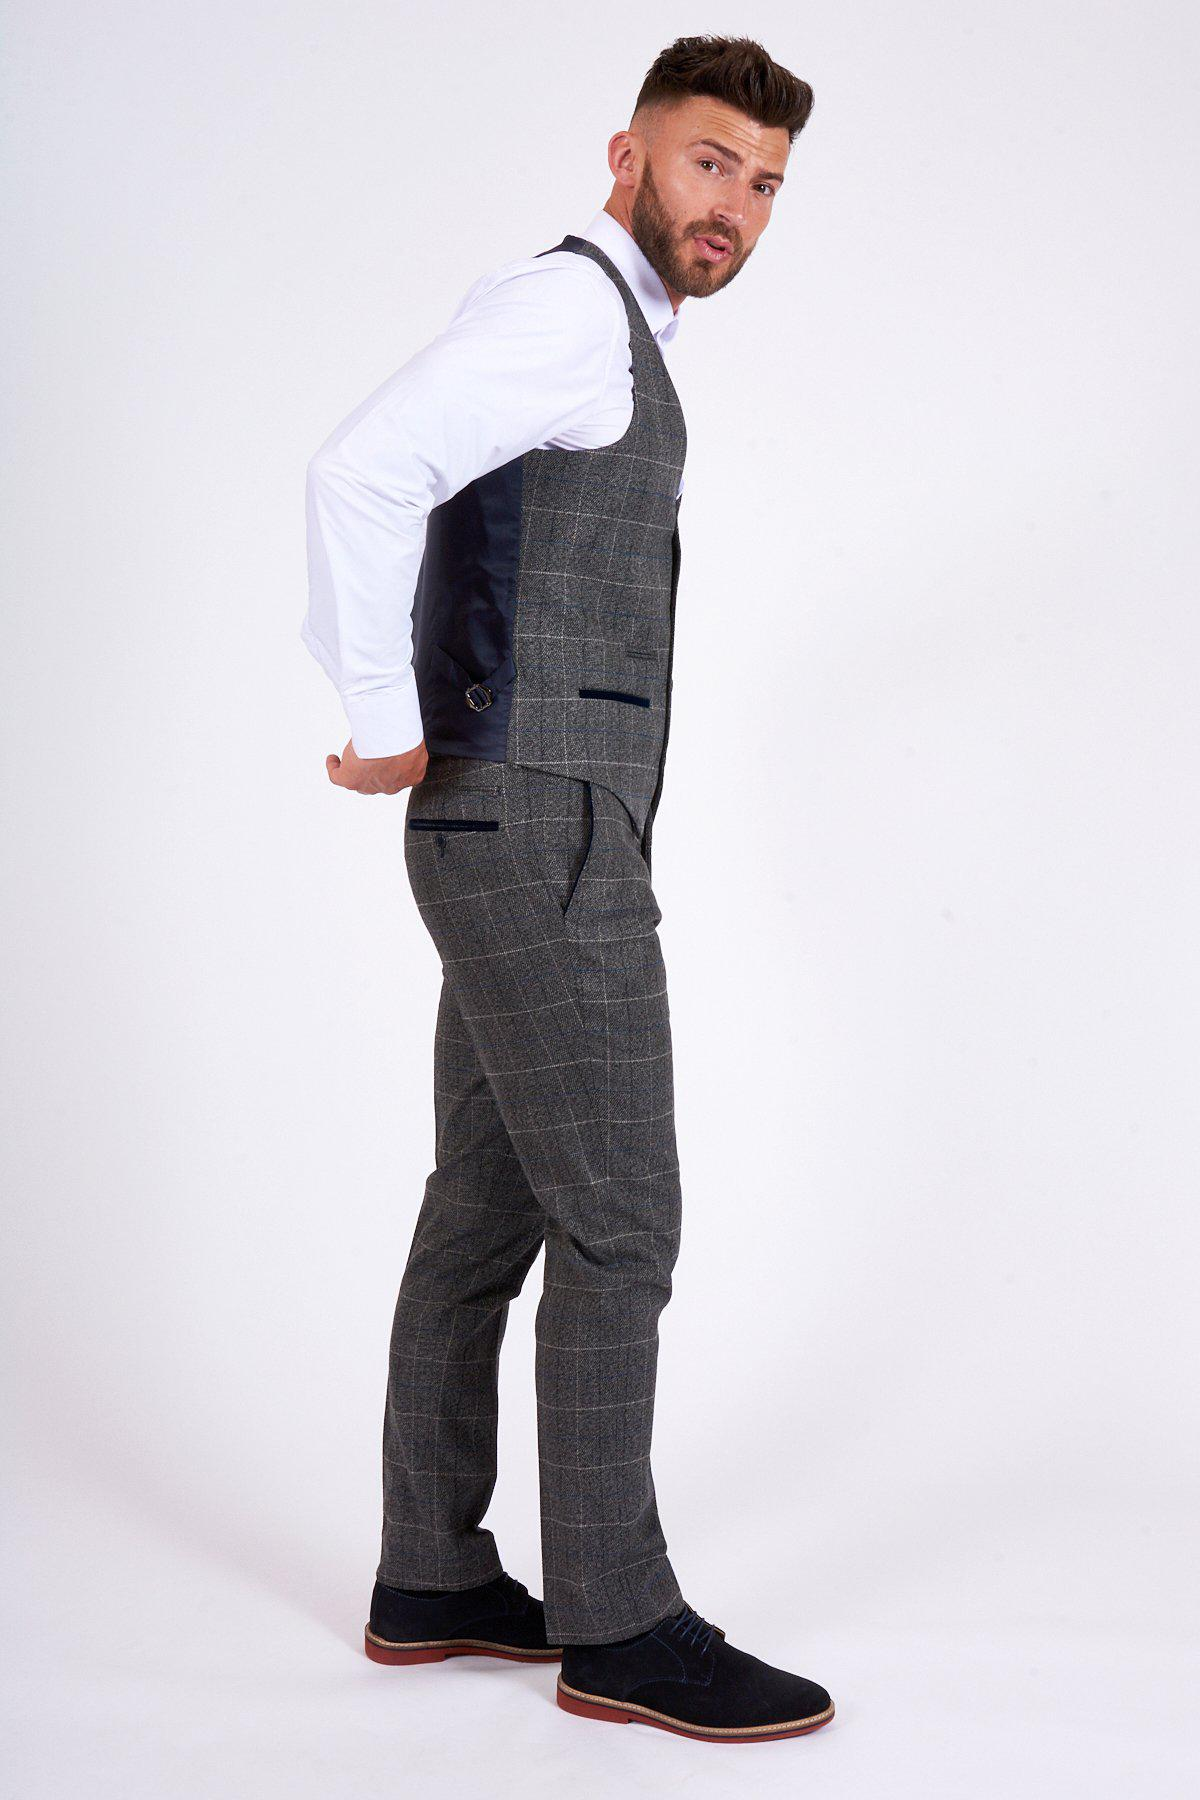 SCOTT - Grey Check Tweed Trousers-TROUSERS-marcdarcy-Marc Darcy (877106364463)